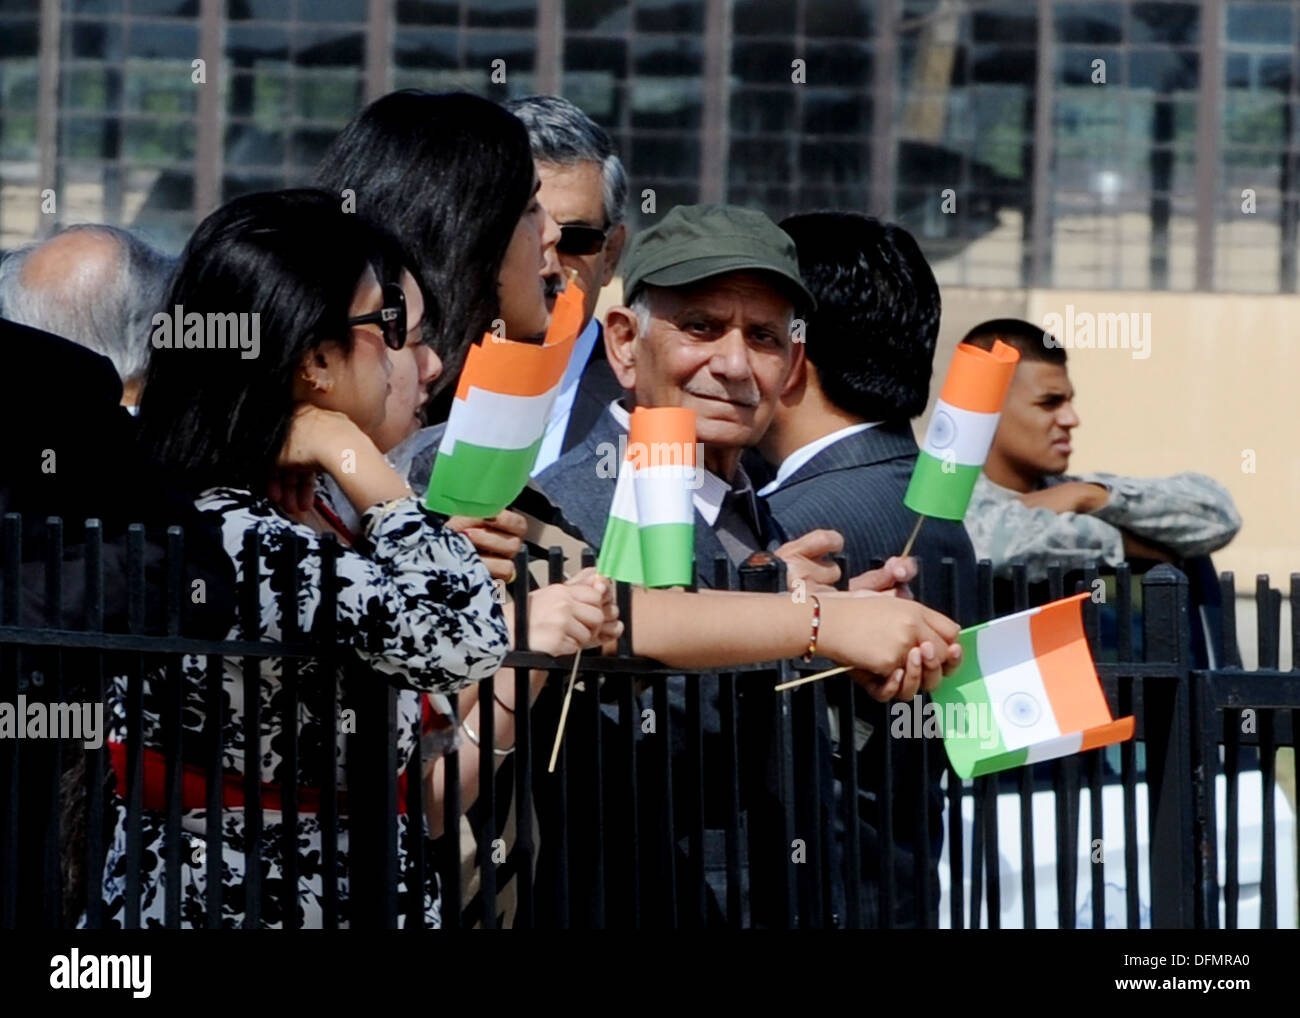 People line the fence and wave the flag of India to welcome Prime Minister of India Dr. Manmohan Singh as he arrives to Joint Base Andrews, Md., Sept. 26, 2013. The Prime Minister arrived for a two-day visit to meet with President Barack Obama and First L - Stock Image